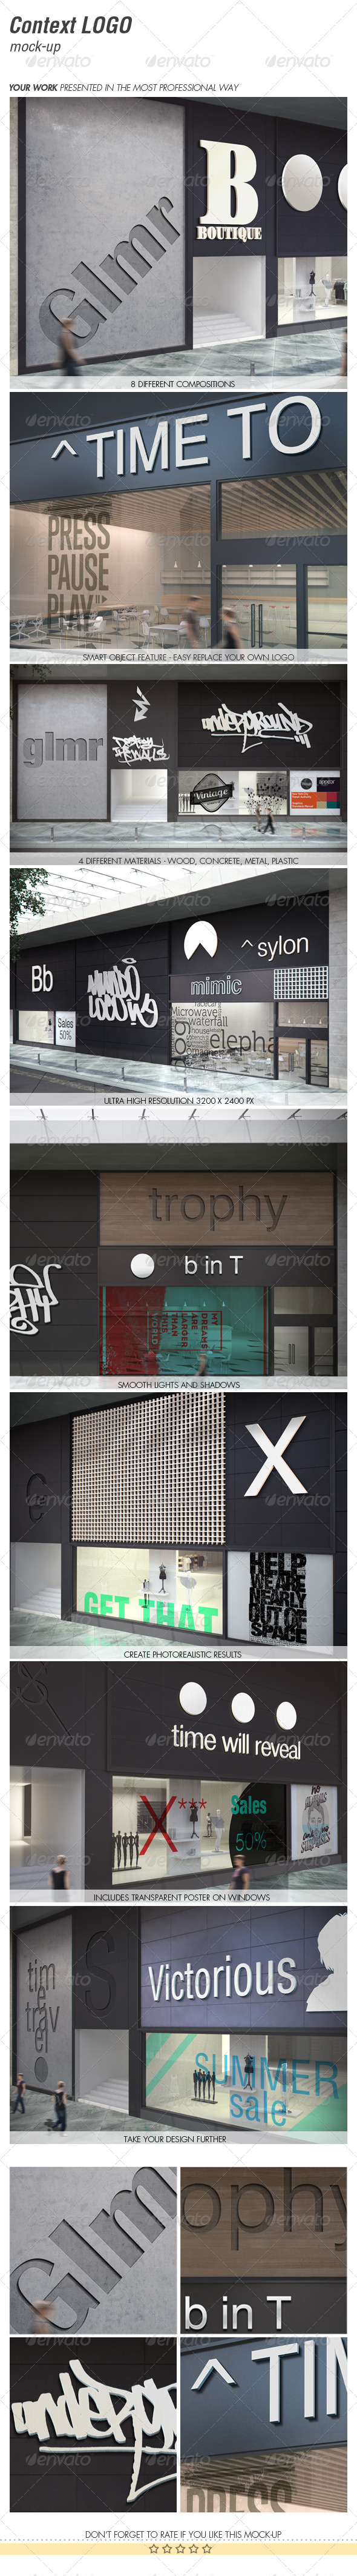 GraphicRiver CONTEXT LOGO mock-up 5396726